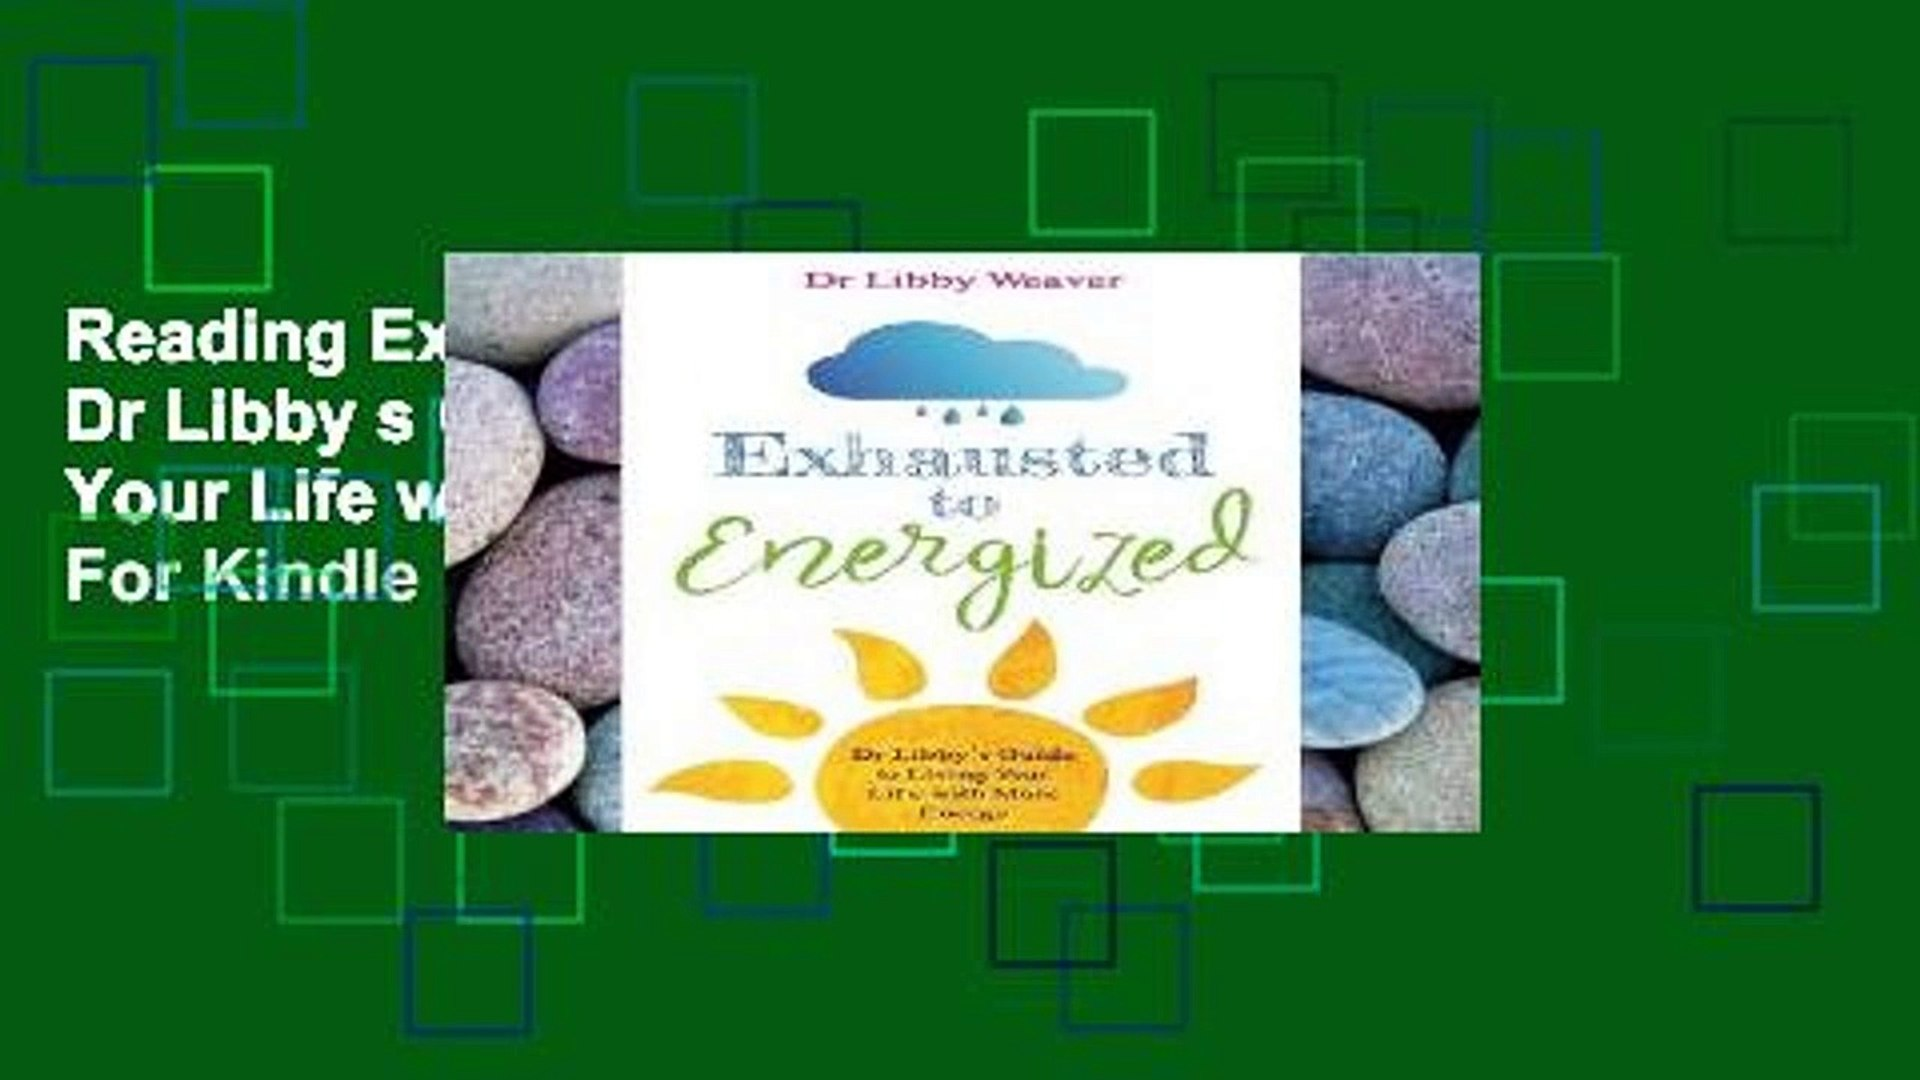 Reading Exhausted to Energized: Dr Libby s Guide to Living Your Life with  More Energy For Kindle